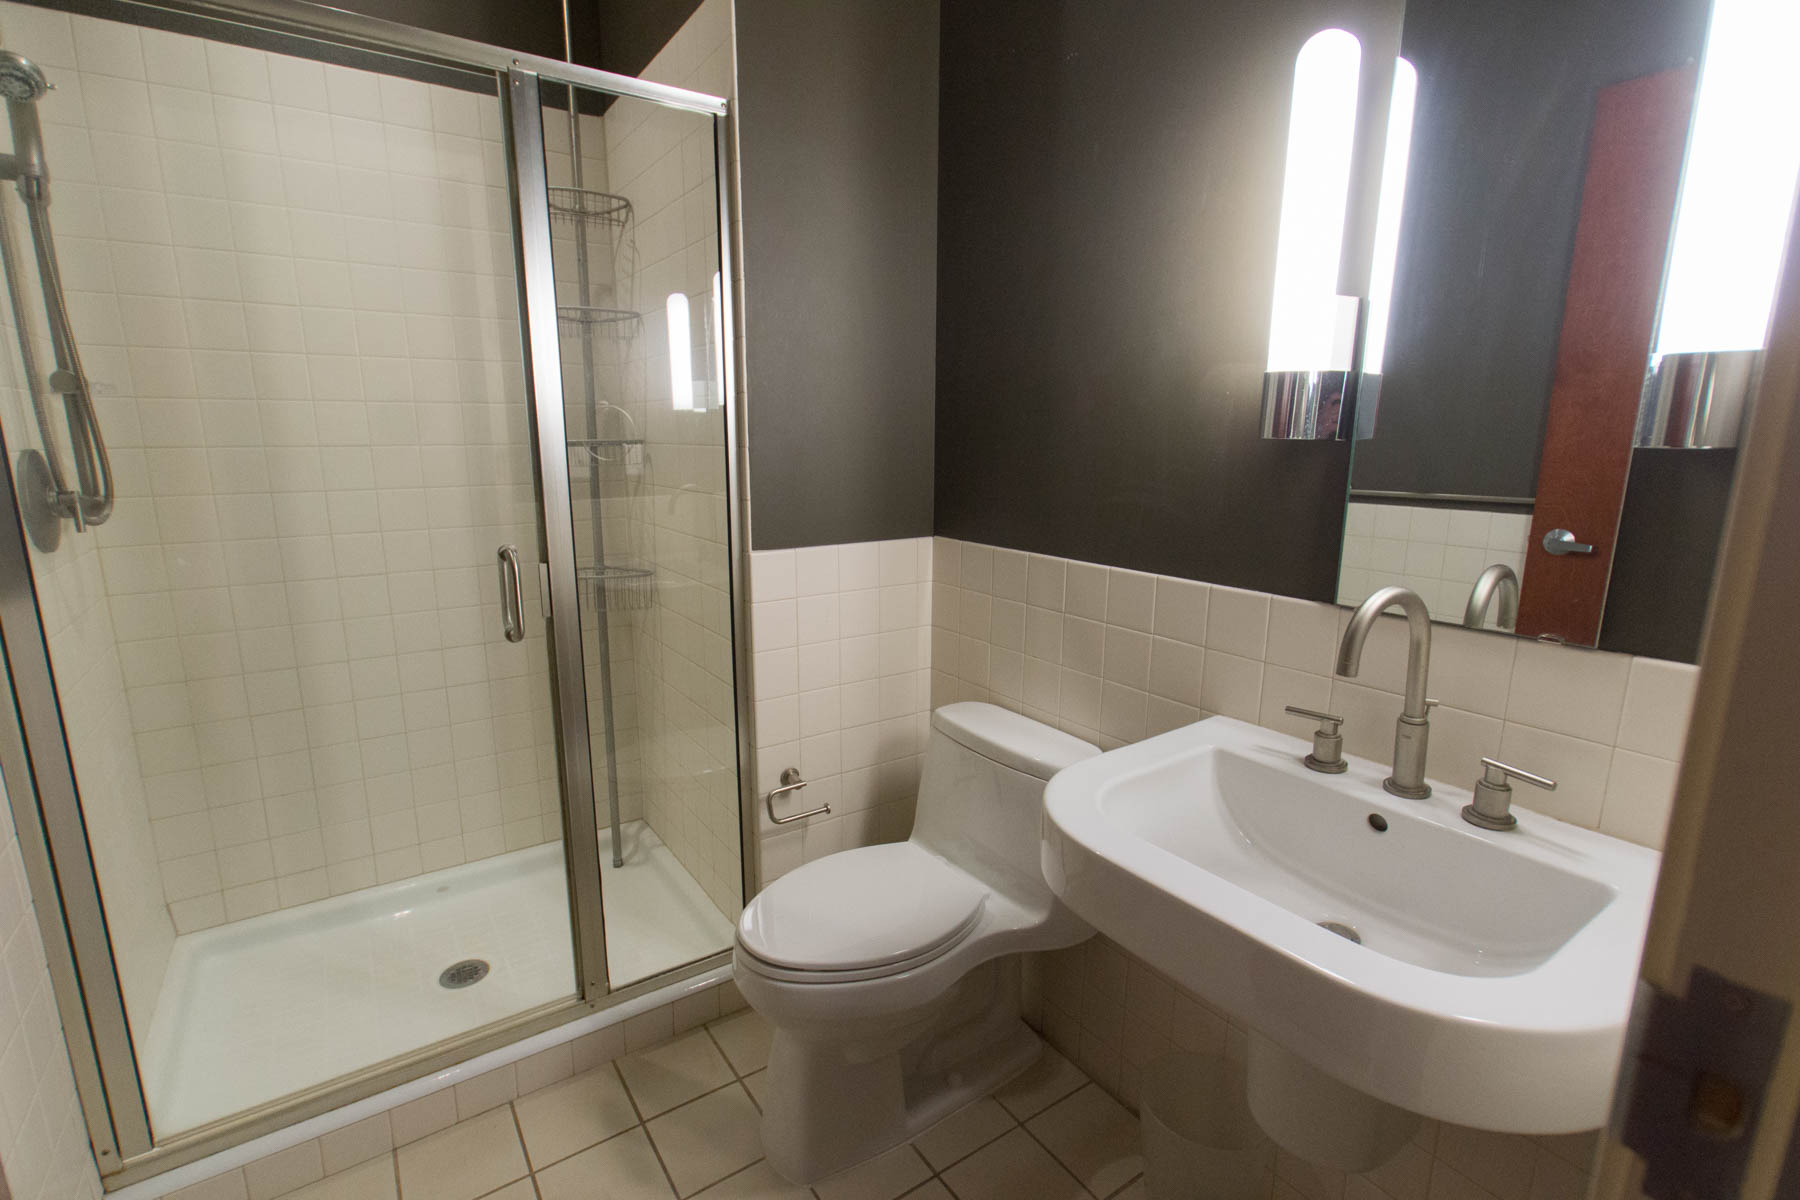 Additional photo for property listing at 1720 Chouteau Ave # 201 St. Louis, Missouri 63103 United States